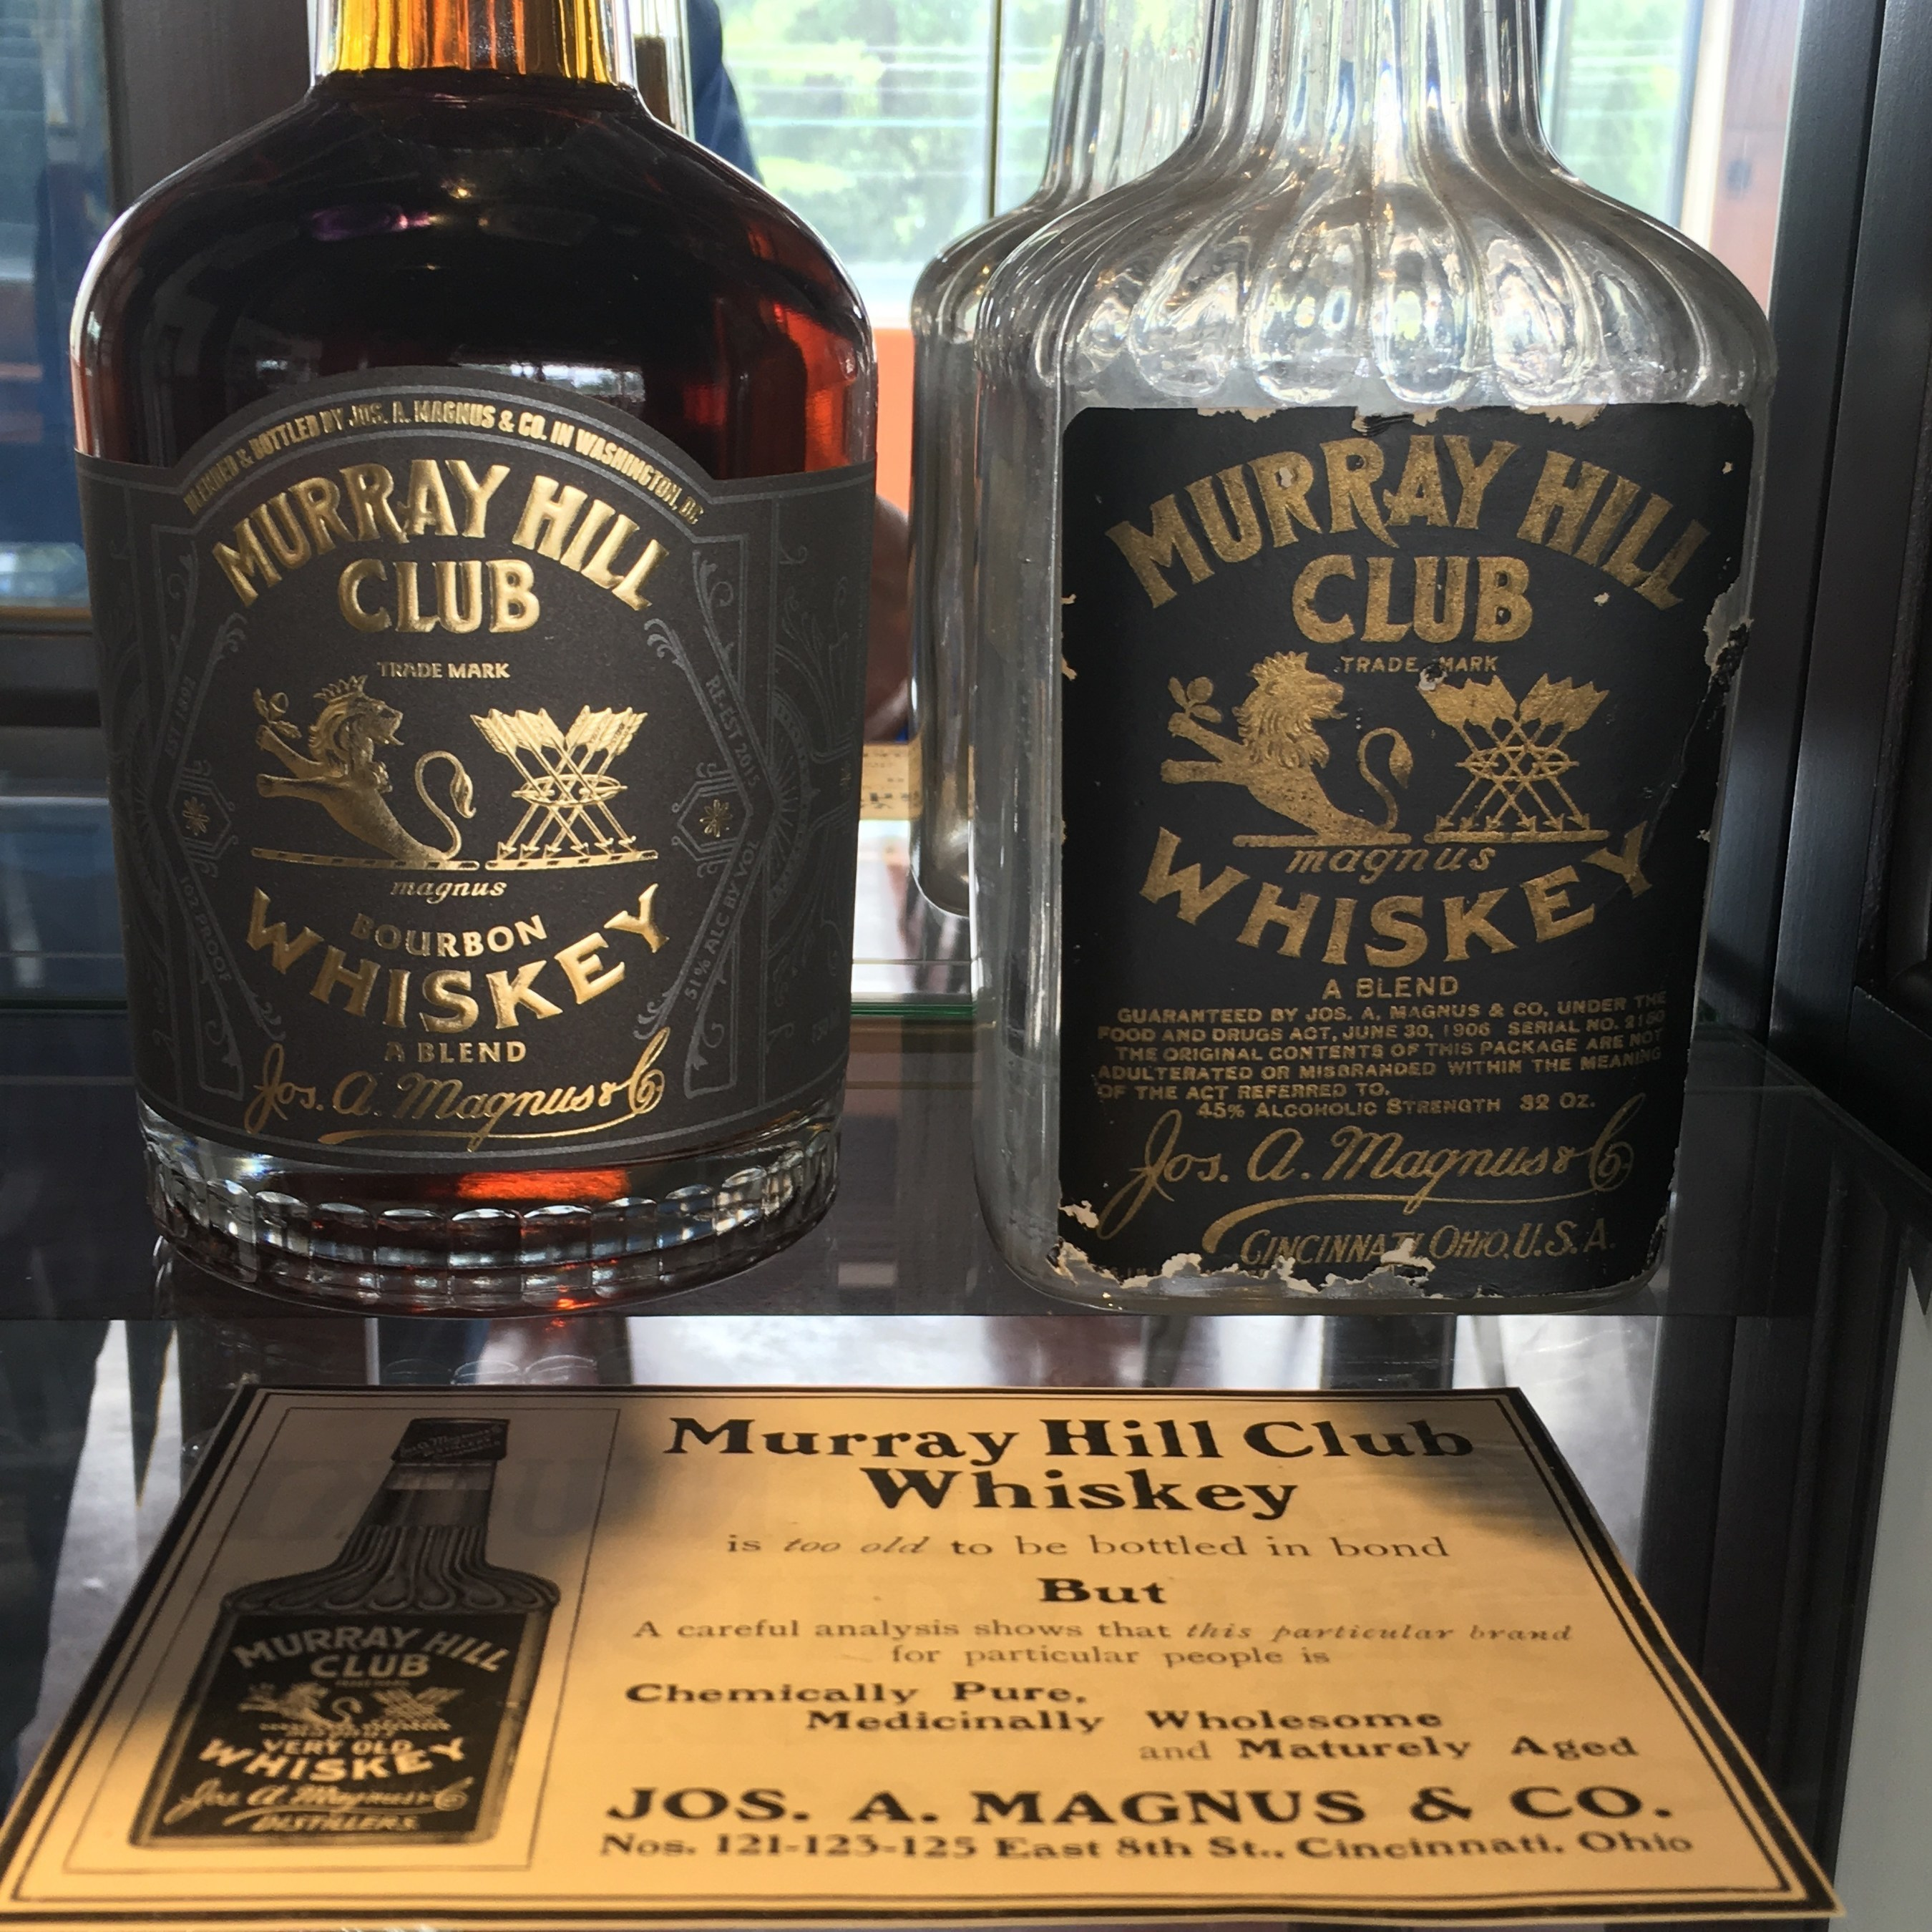 New Murray Hill Club Blended Bourbon Whiskey next to original 1890s Murray Hill Club bottle.